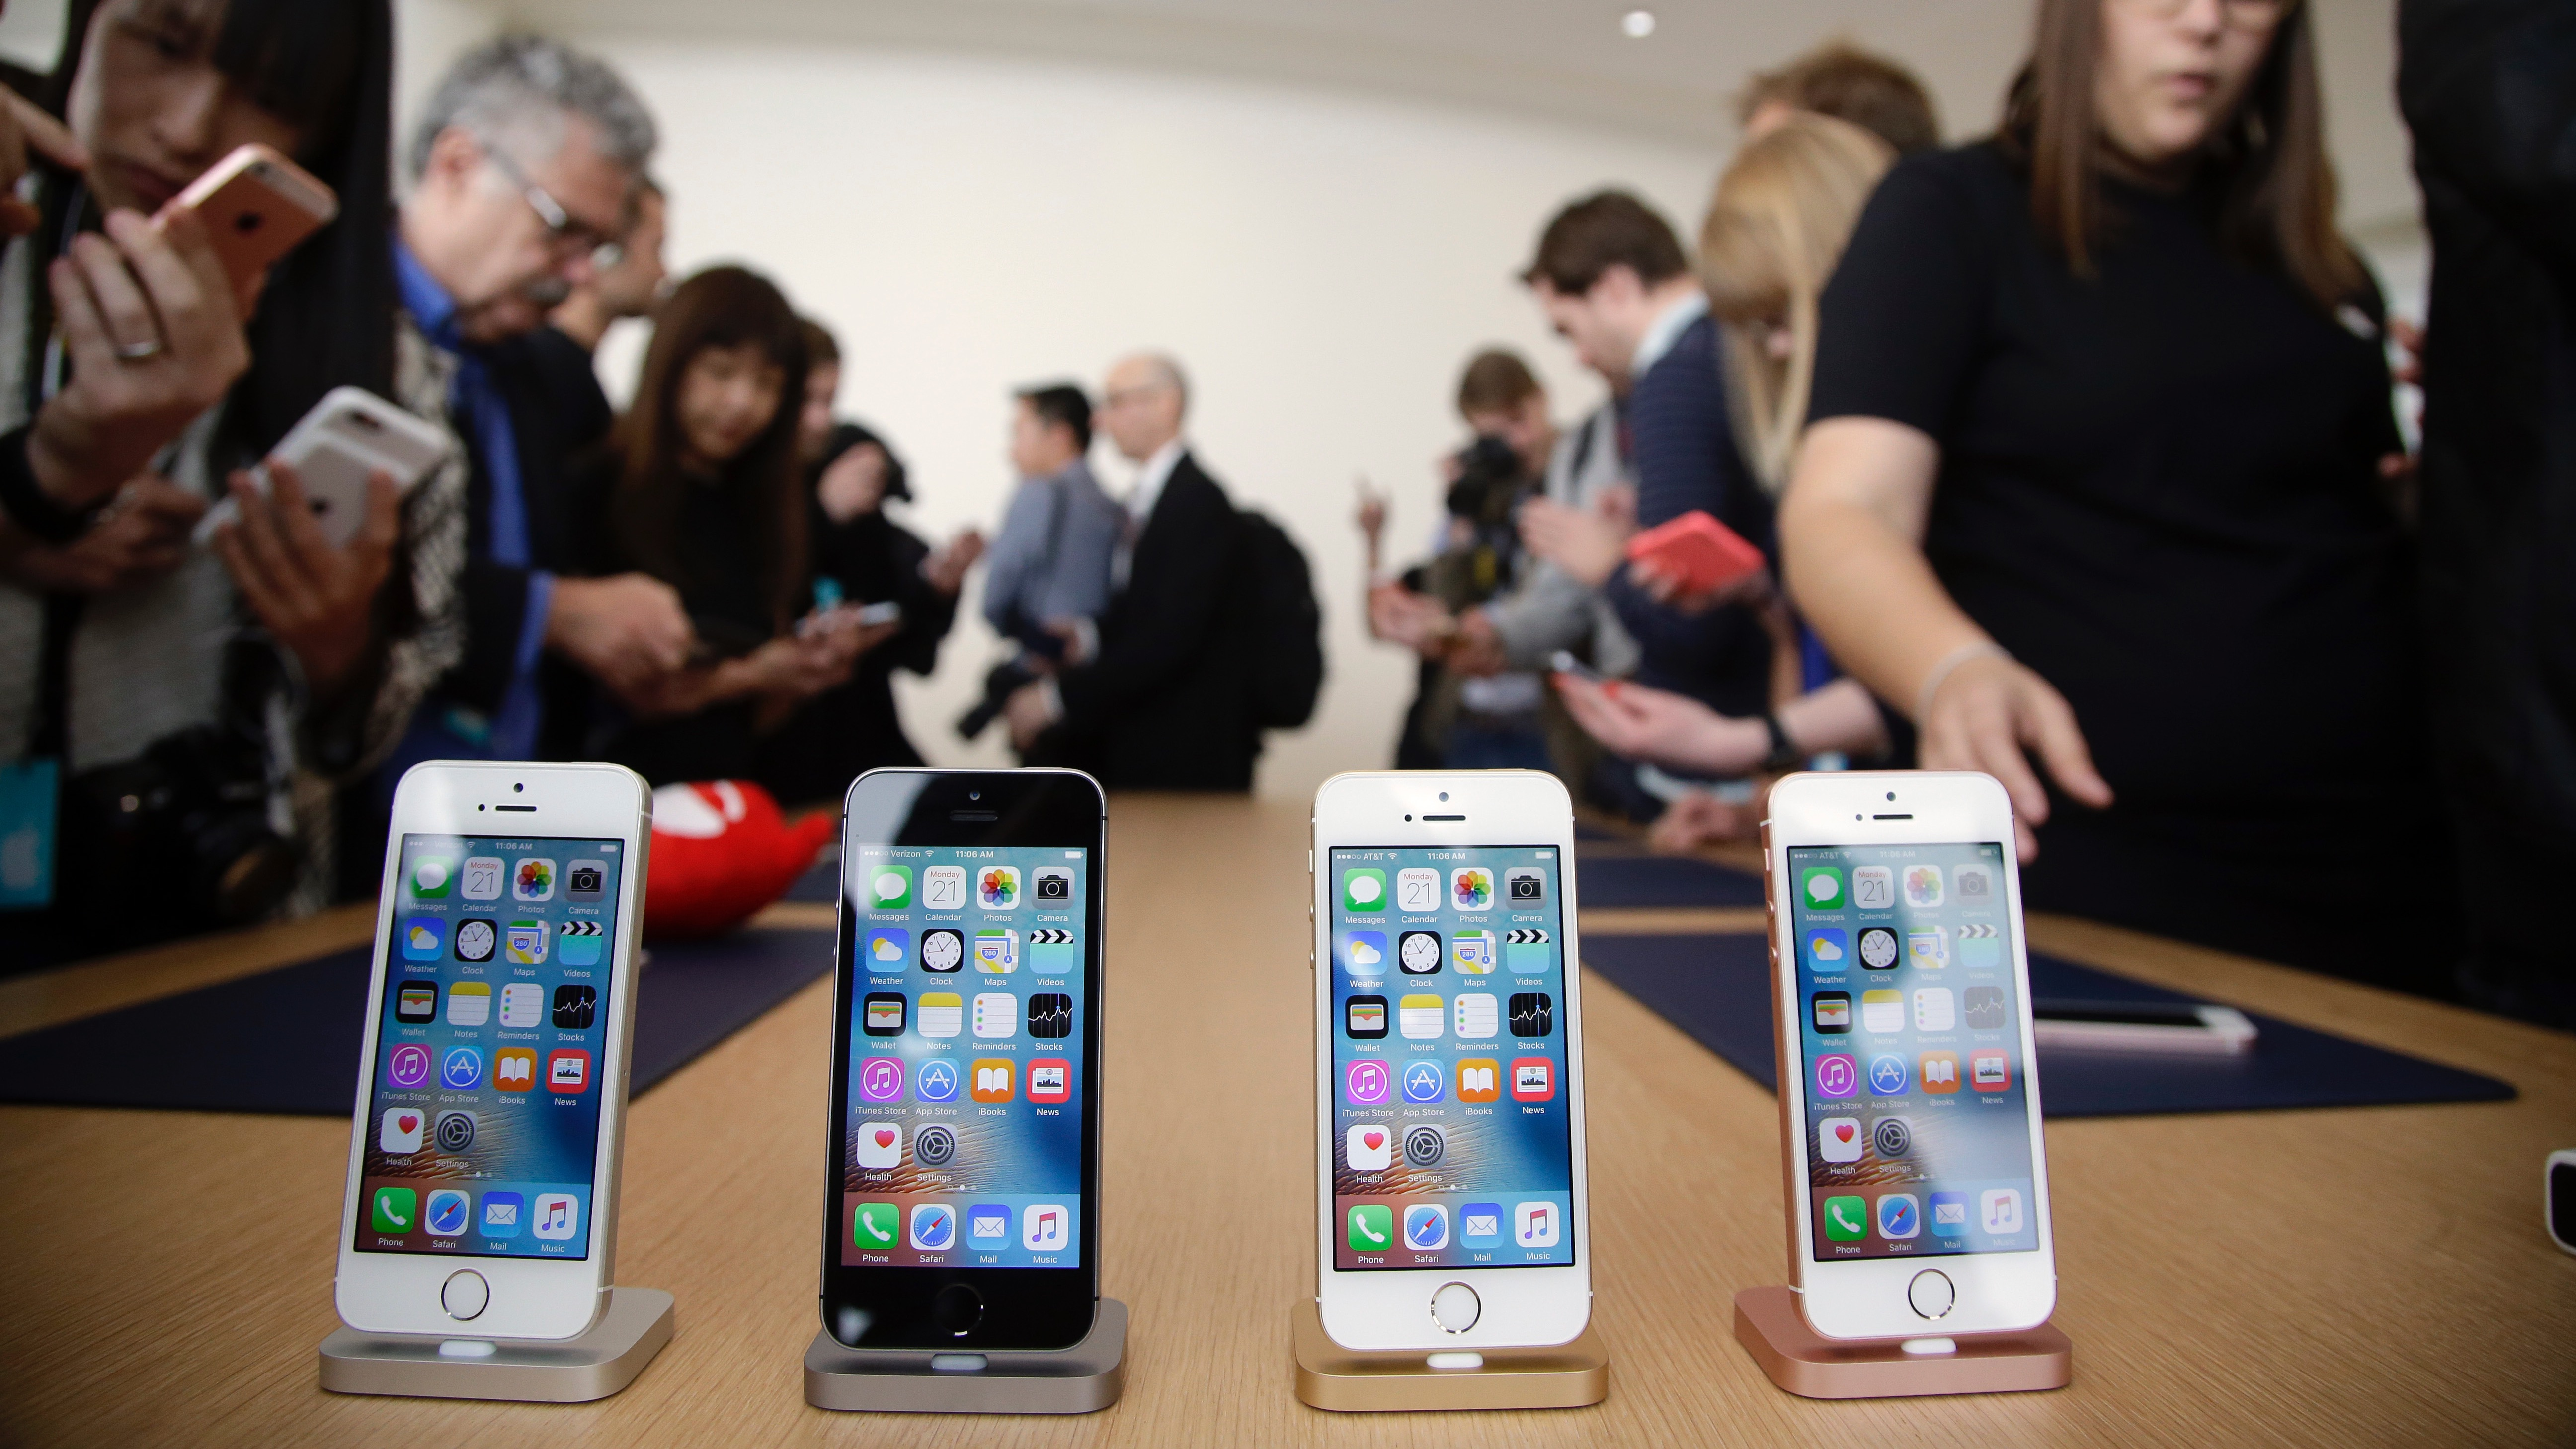 Members of the media and invited guests take a look at the new iPhone SE during an event at Apple headquarters Monday, March 21, 2016, in Cupertino, Calif. (AP Photo/Marcio Jose Sanchez)